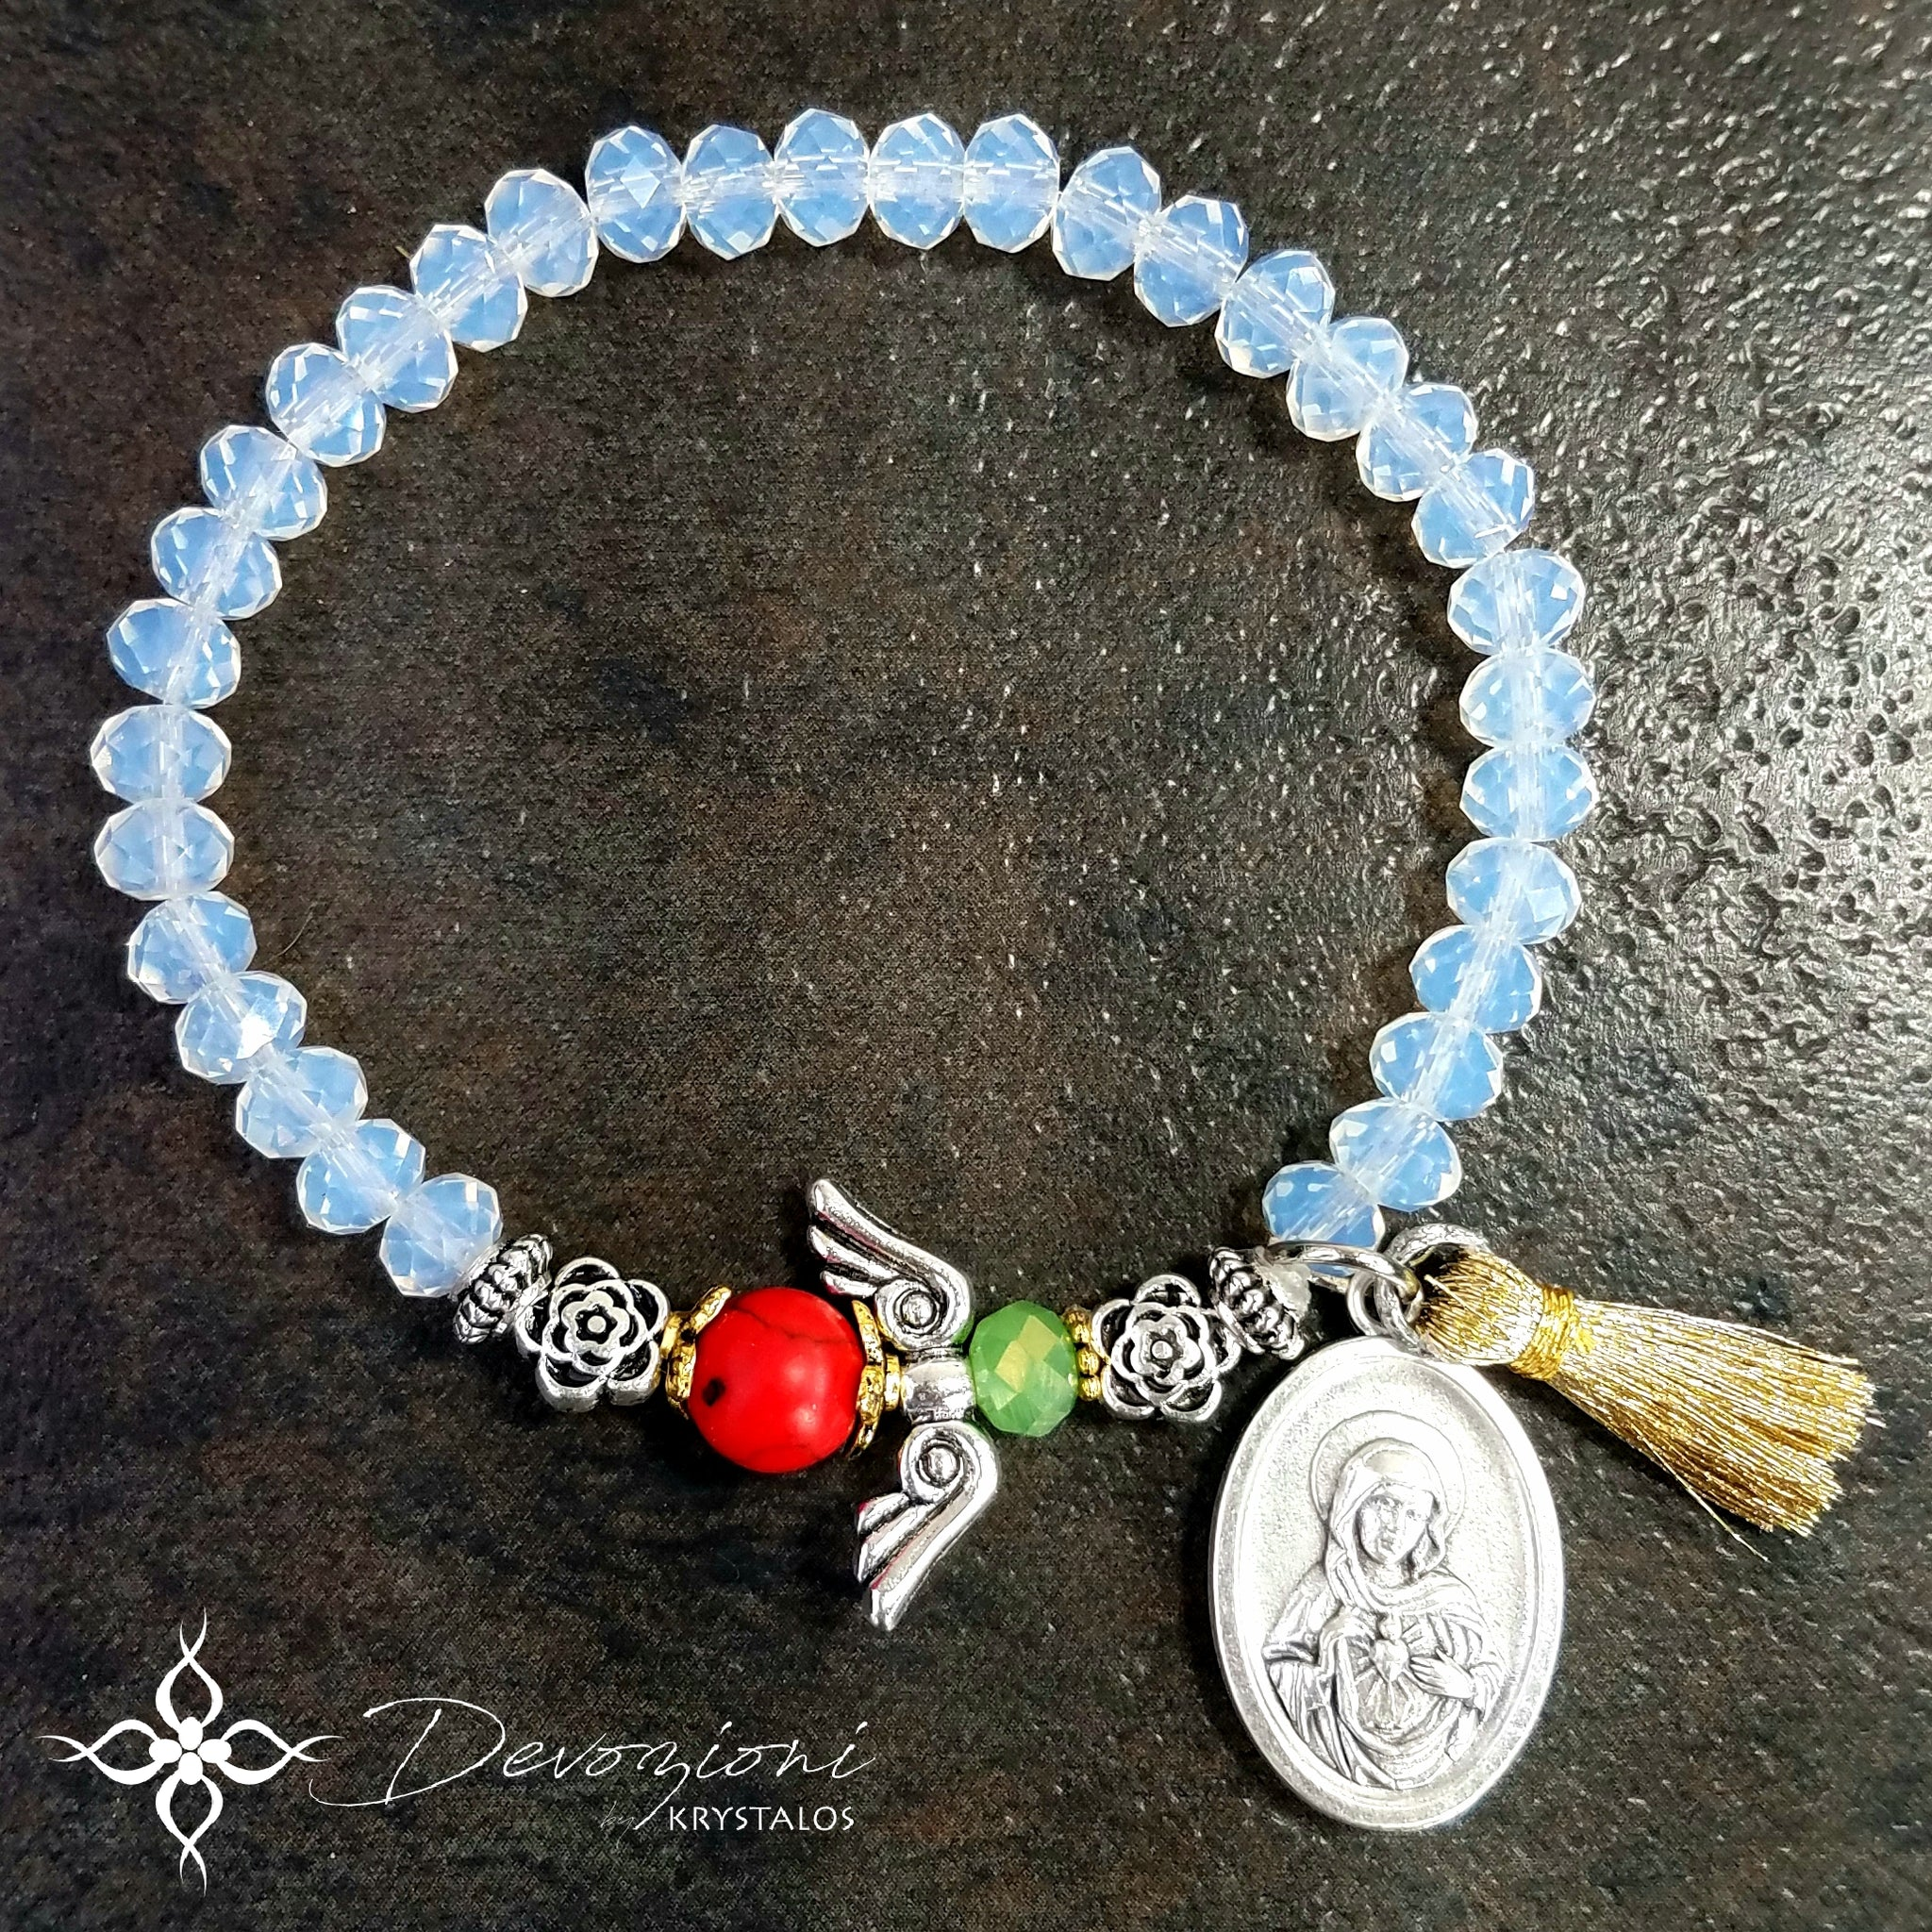 The Virgin of Fatima and the Angel of Portugal - Komboskini Bracelet